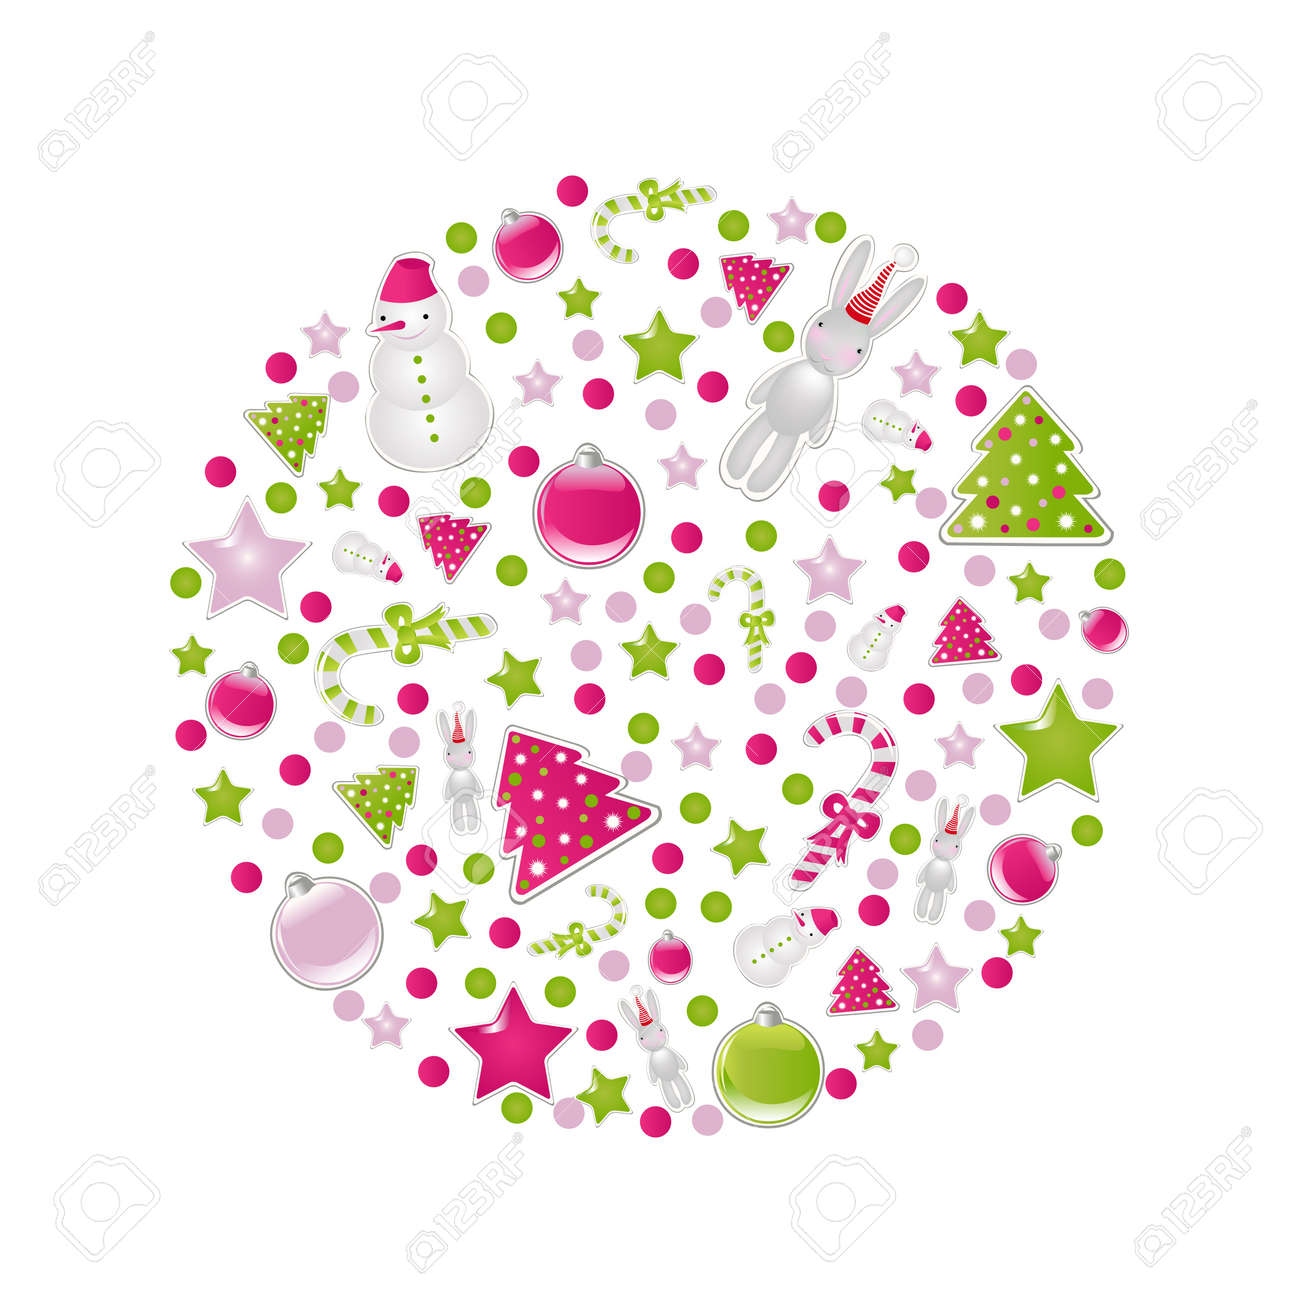 Ball Of Christmas Symbols And Elements, Isolated On White Background, Vector Illustration Stock Vector - 11309011